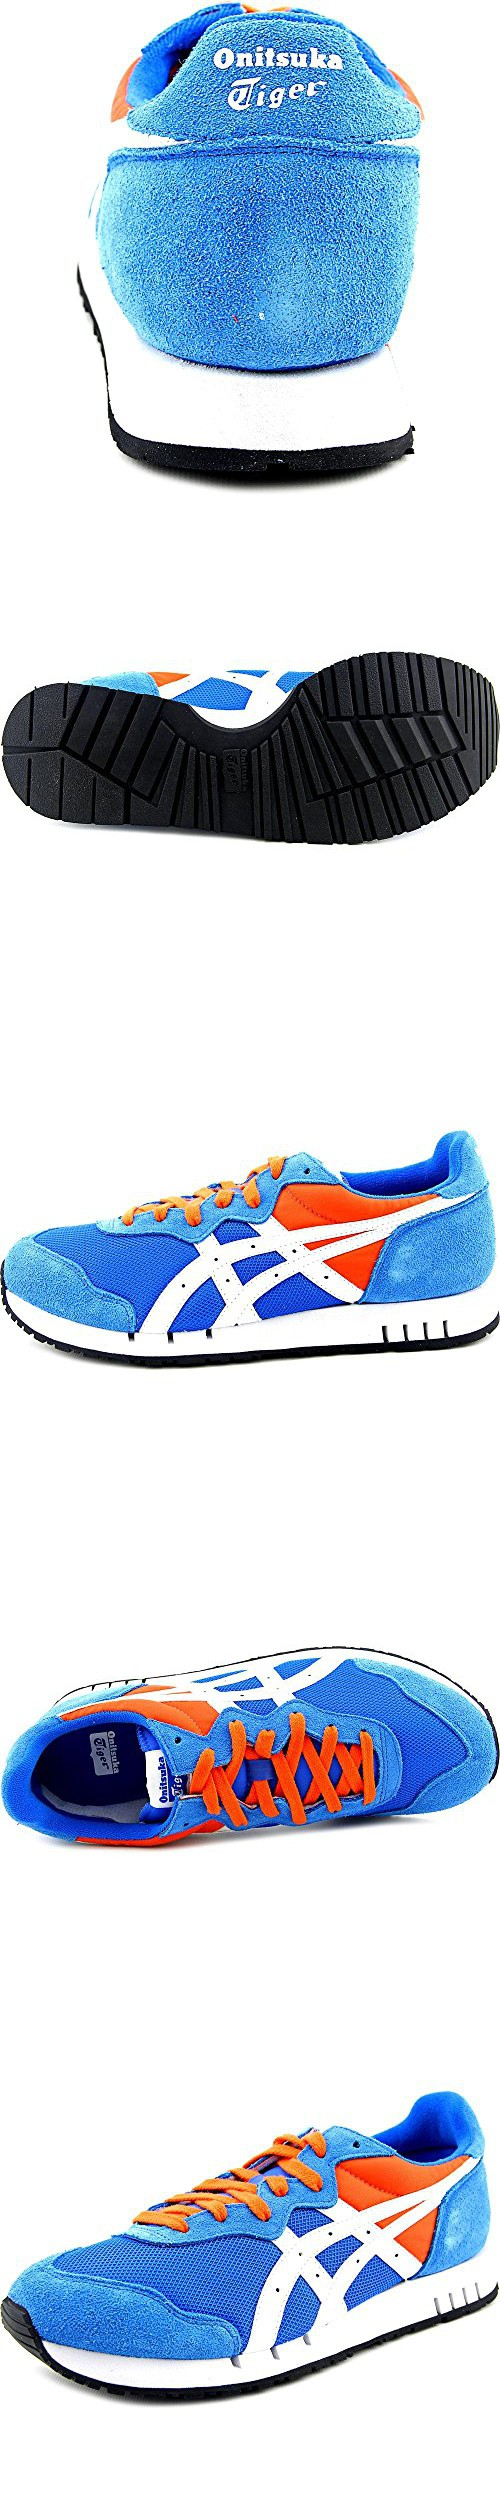 Onitsuka Tiger X-caliber Fashion Shoe,Blue/White,8.5 M US